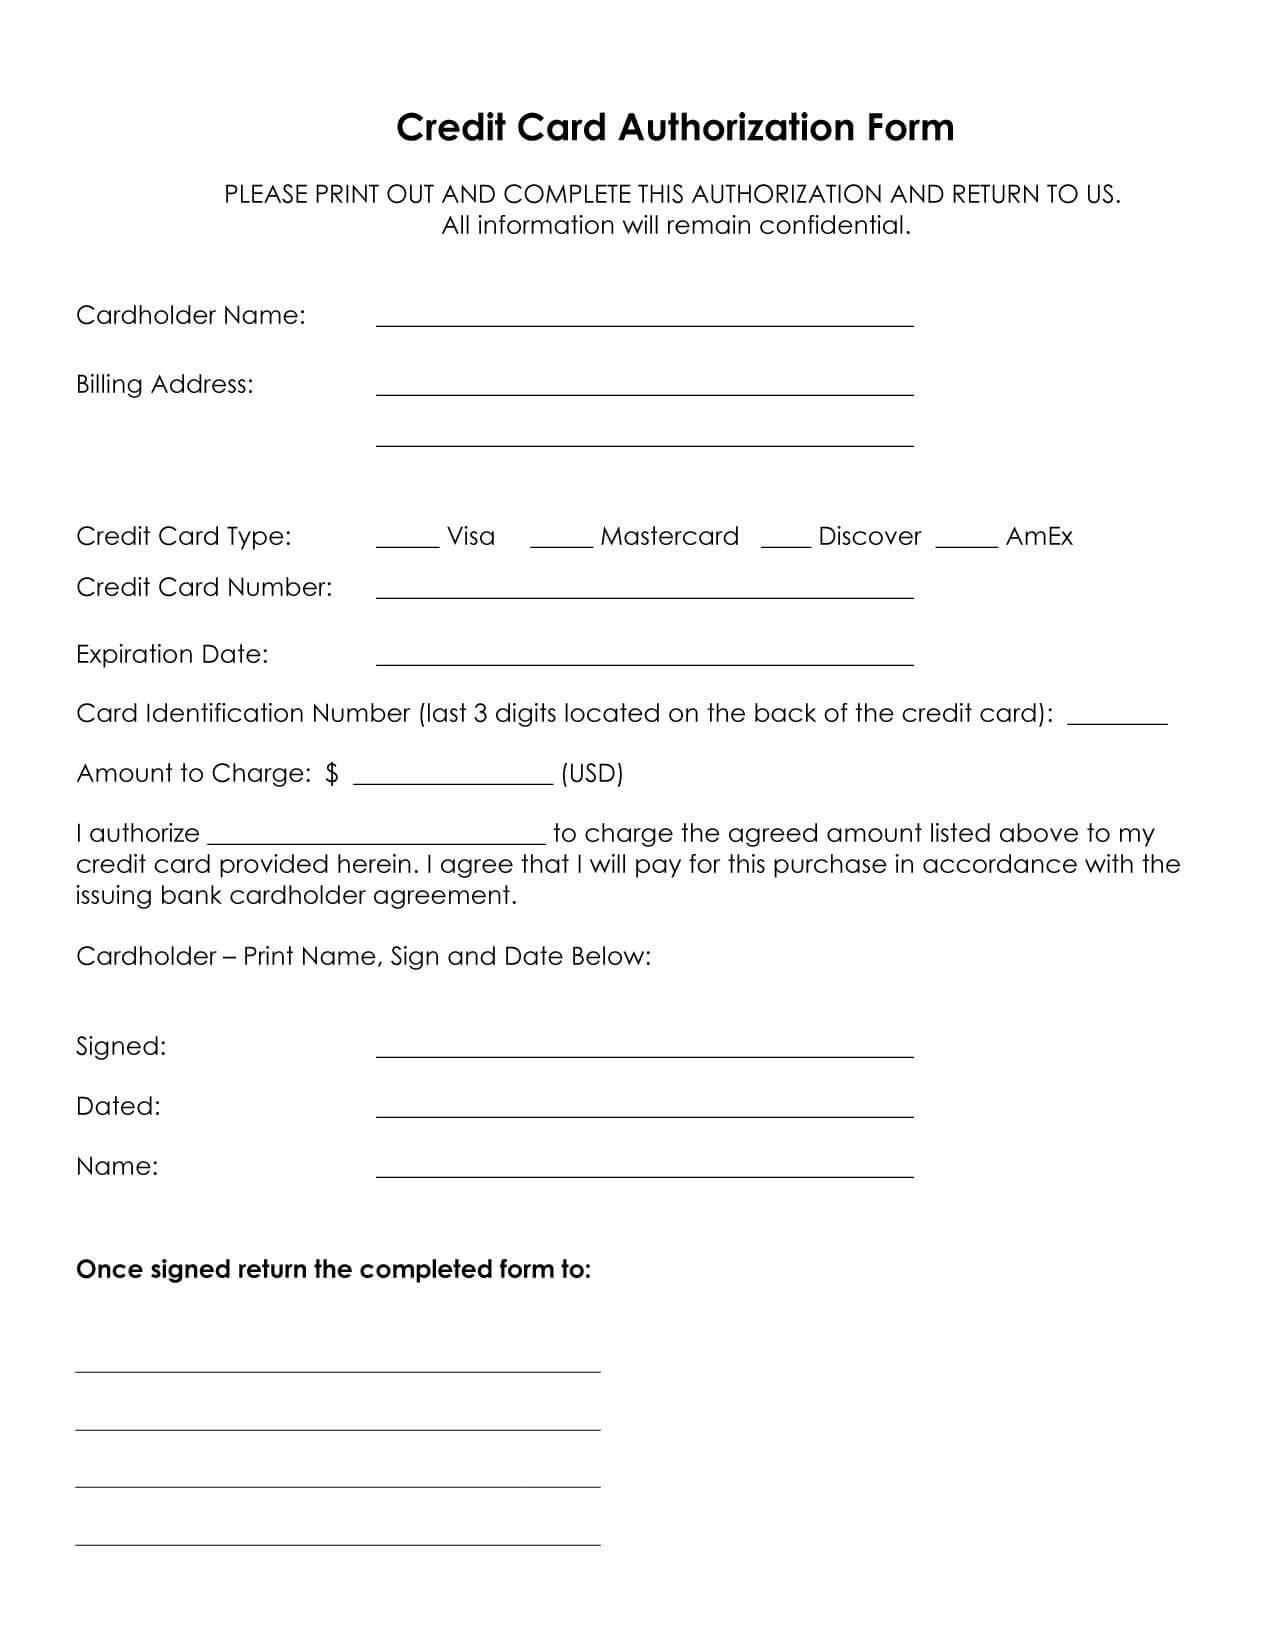 Credit Card Authorization Form Template In 2020 | Credit Regarding Credit Card Payment Form Template Pdf